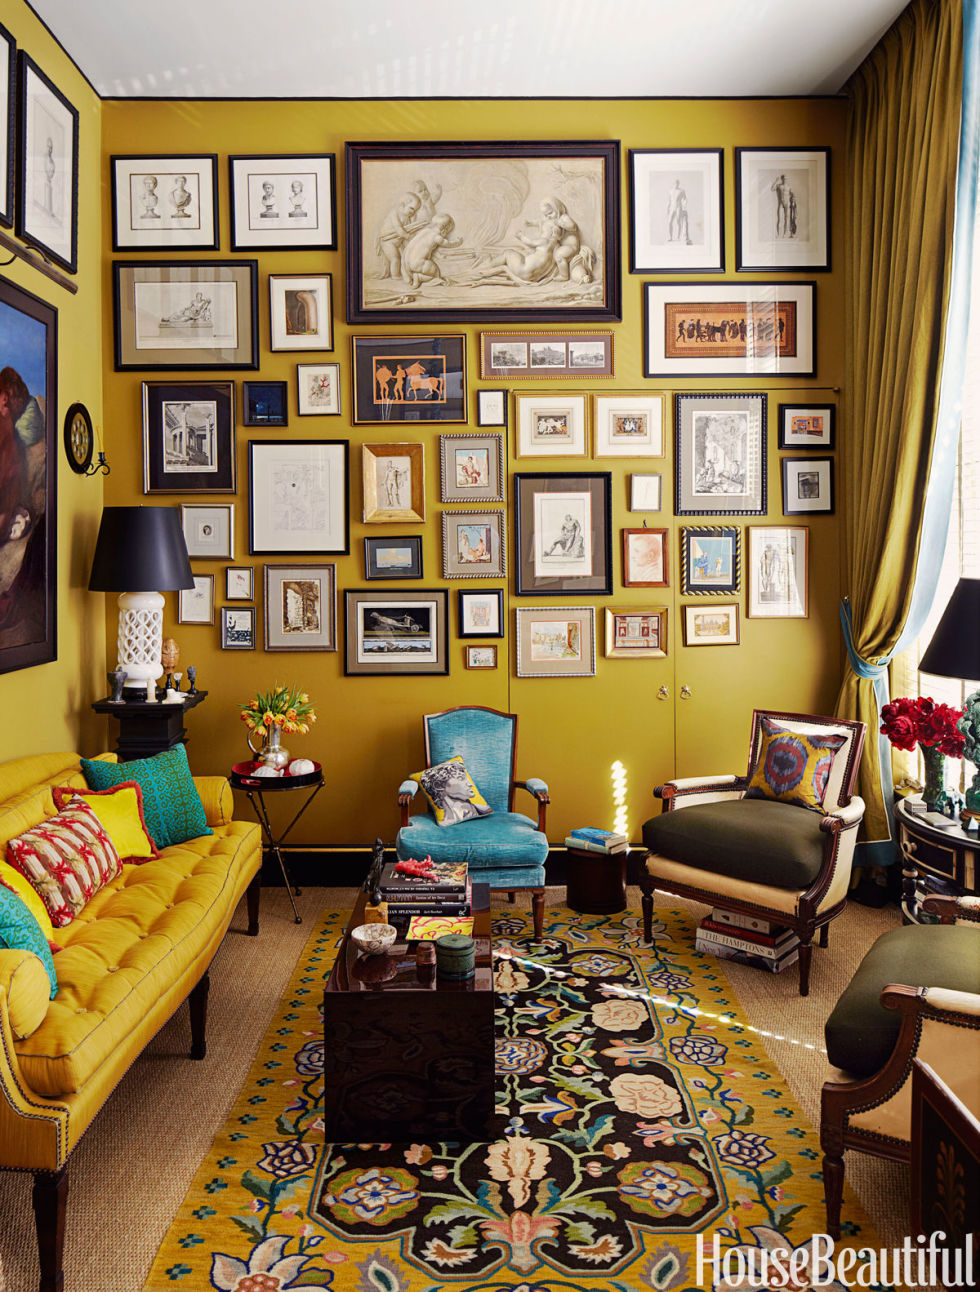 Living Room Decorating Ideas Yellow Walls 11 small living room decorating ideas - how to arrange a small